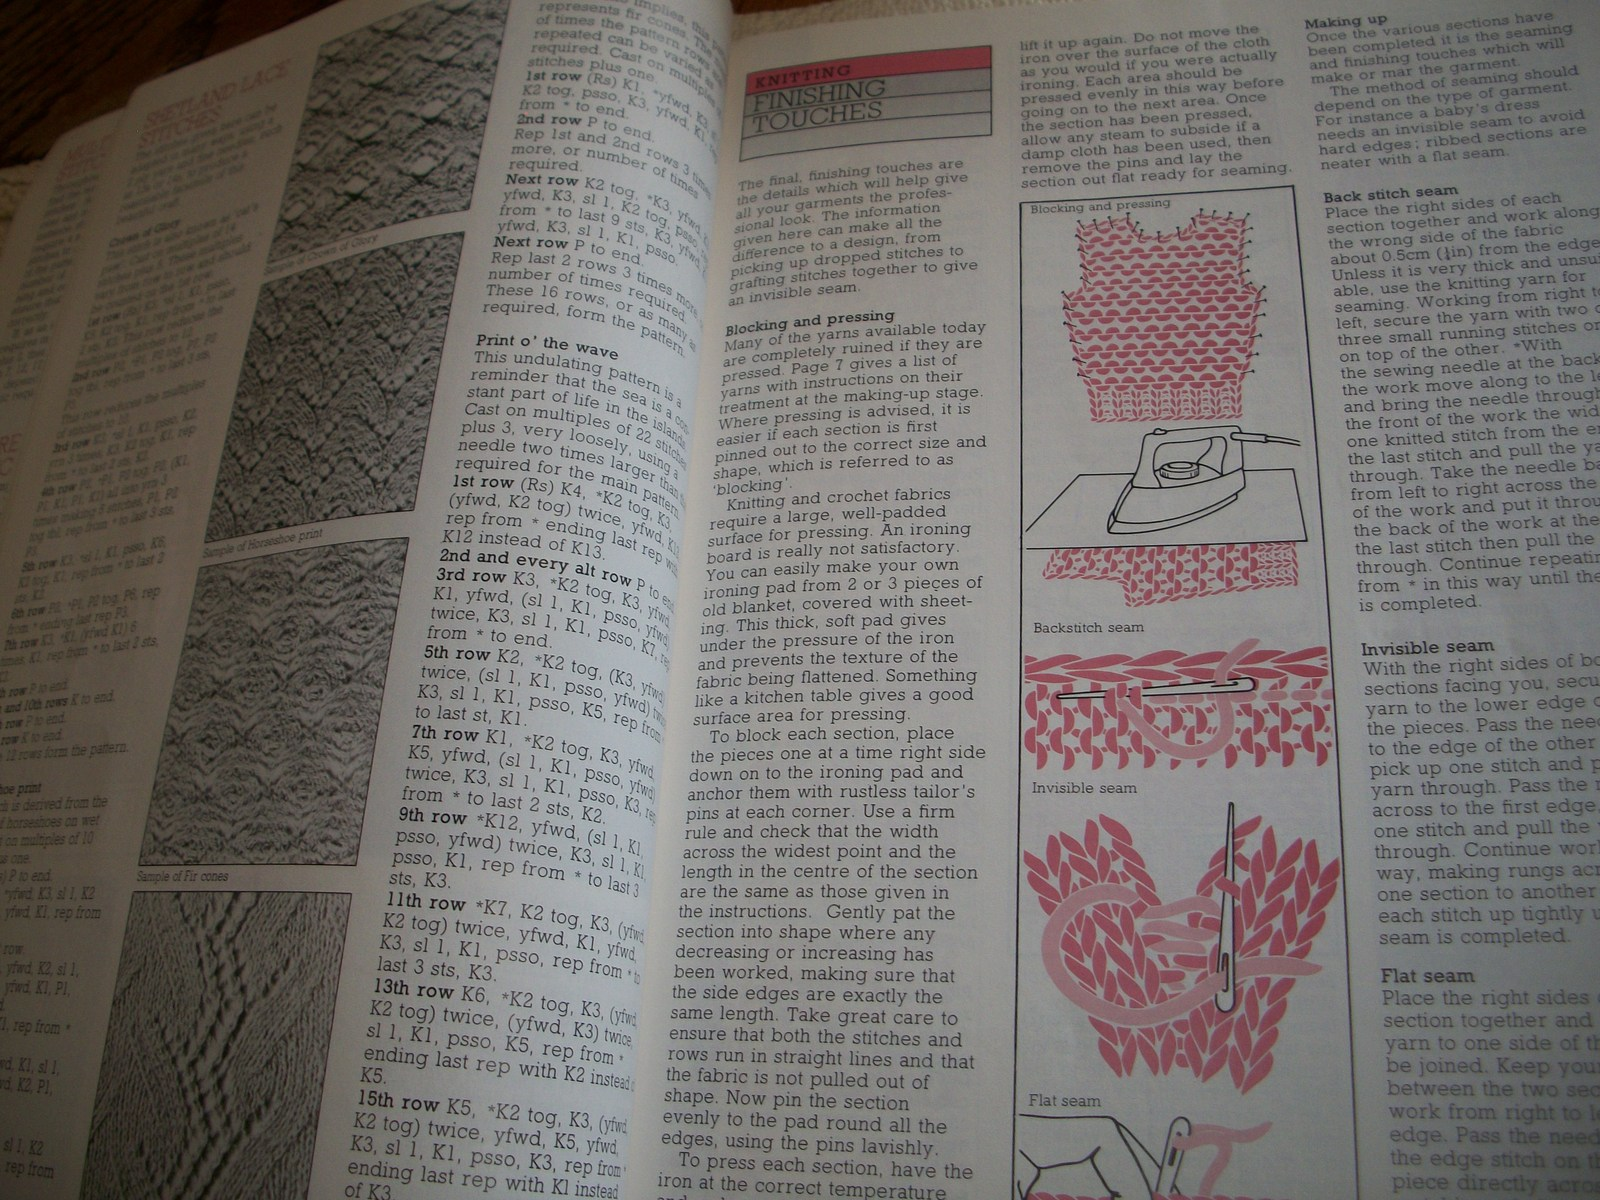 Knitting Fashion: A Step By Step Guide To Knitting & Crochet